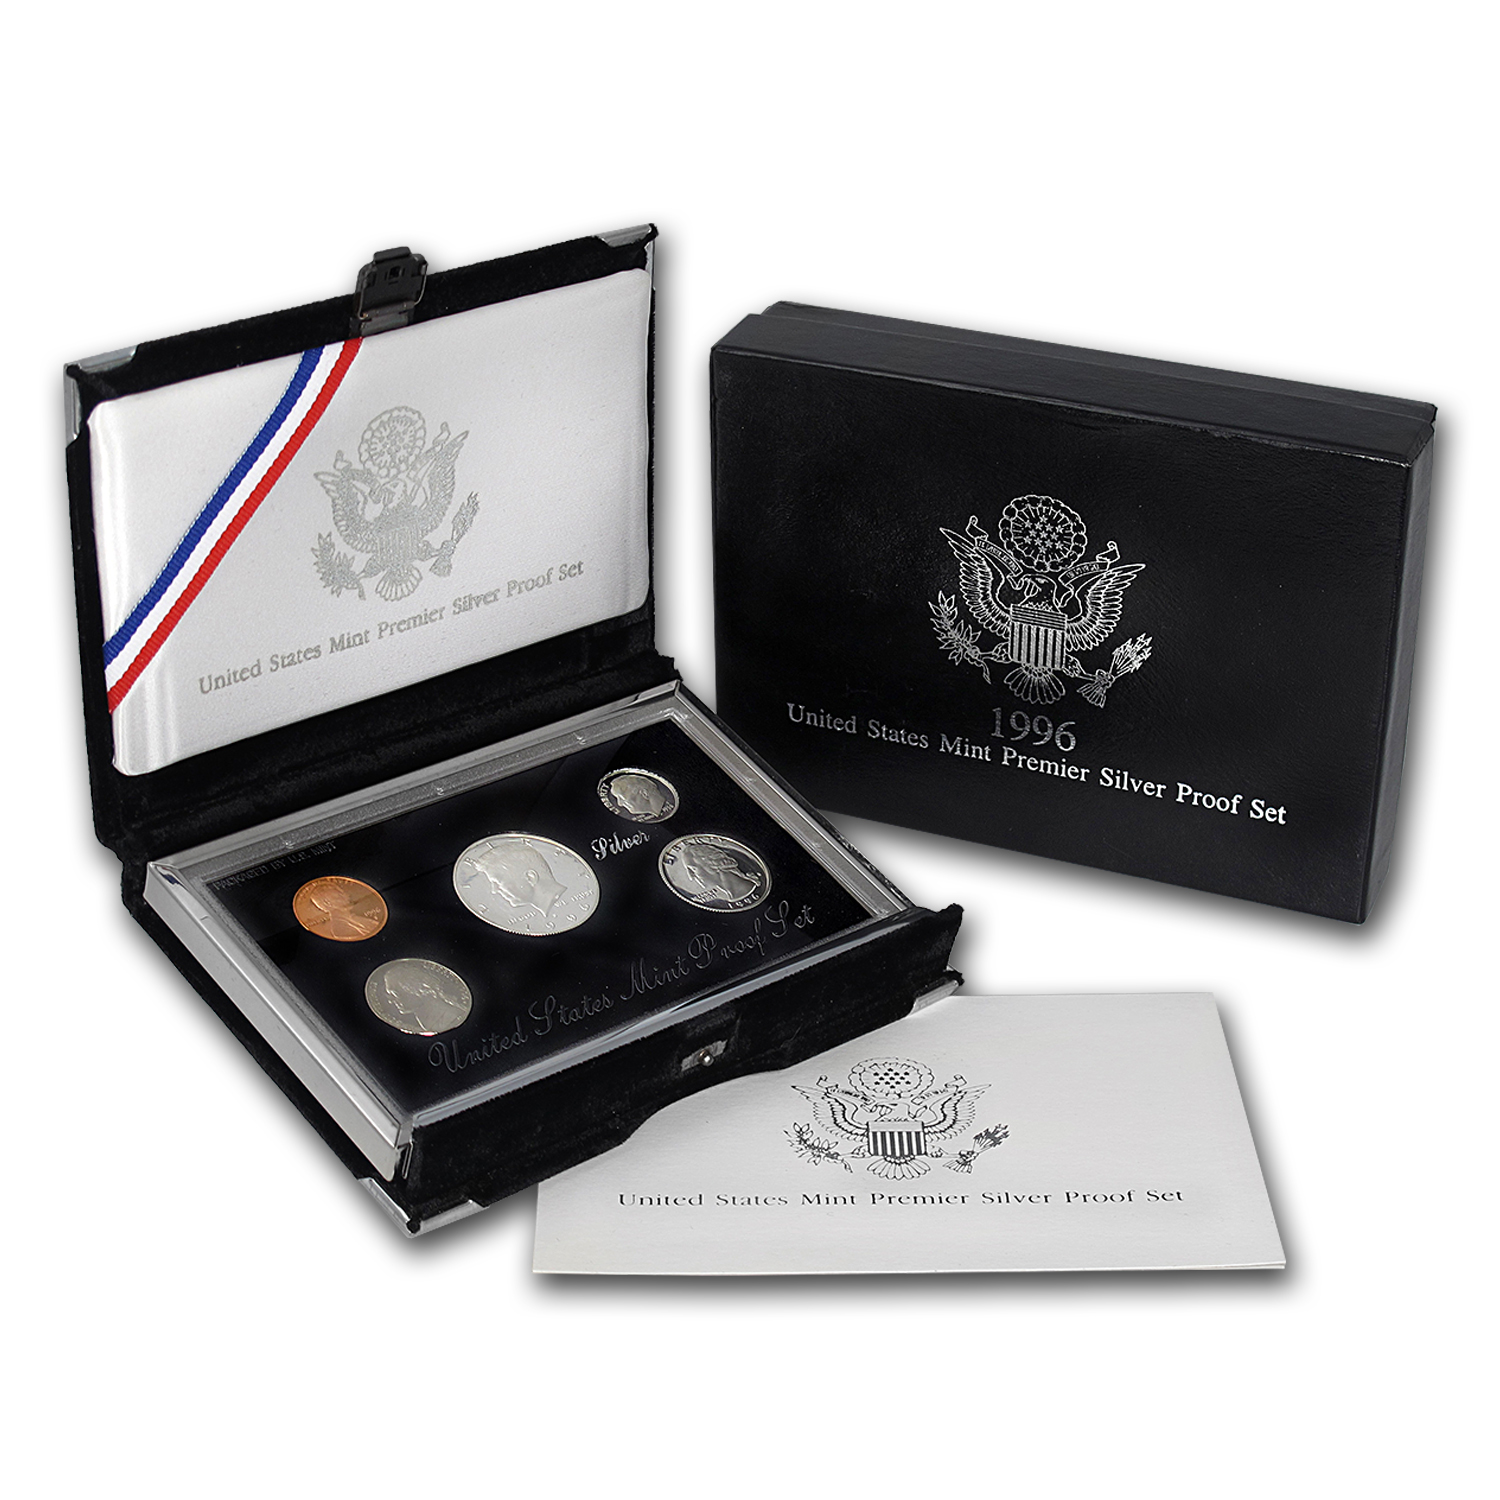 1996 Premier Silver Proof Set